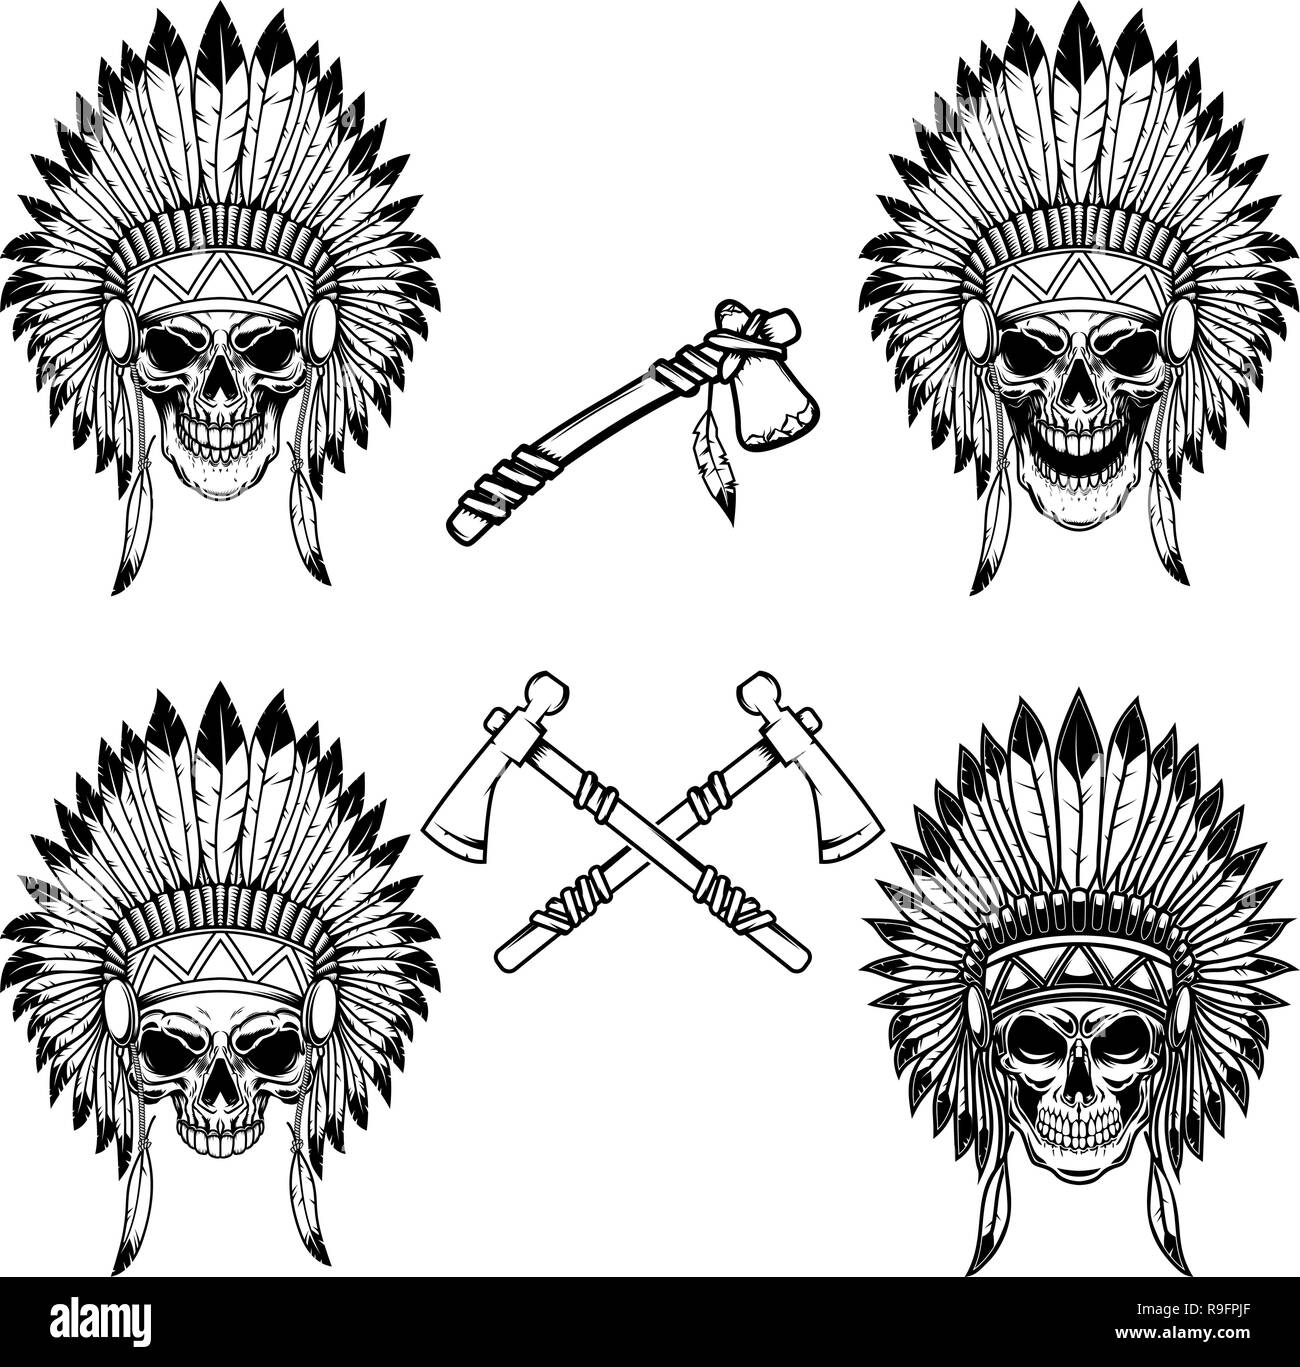 Native indian chief skull with crossed tomahawks. Design element for logo, label, emblem, sign. Vector illustration - Stock Image